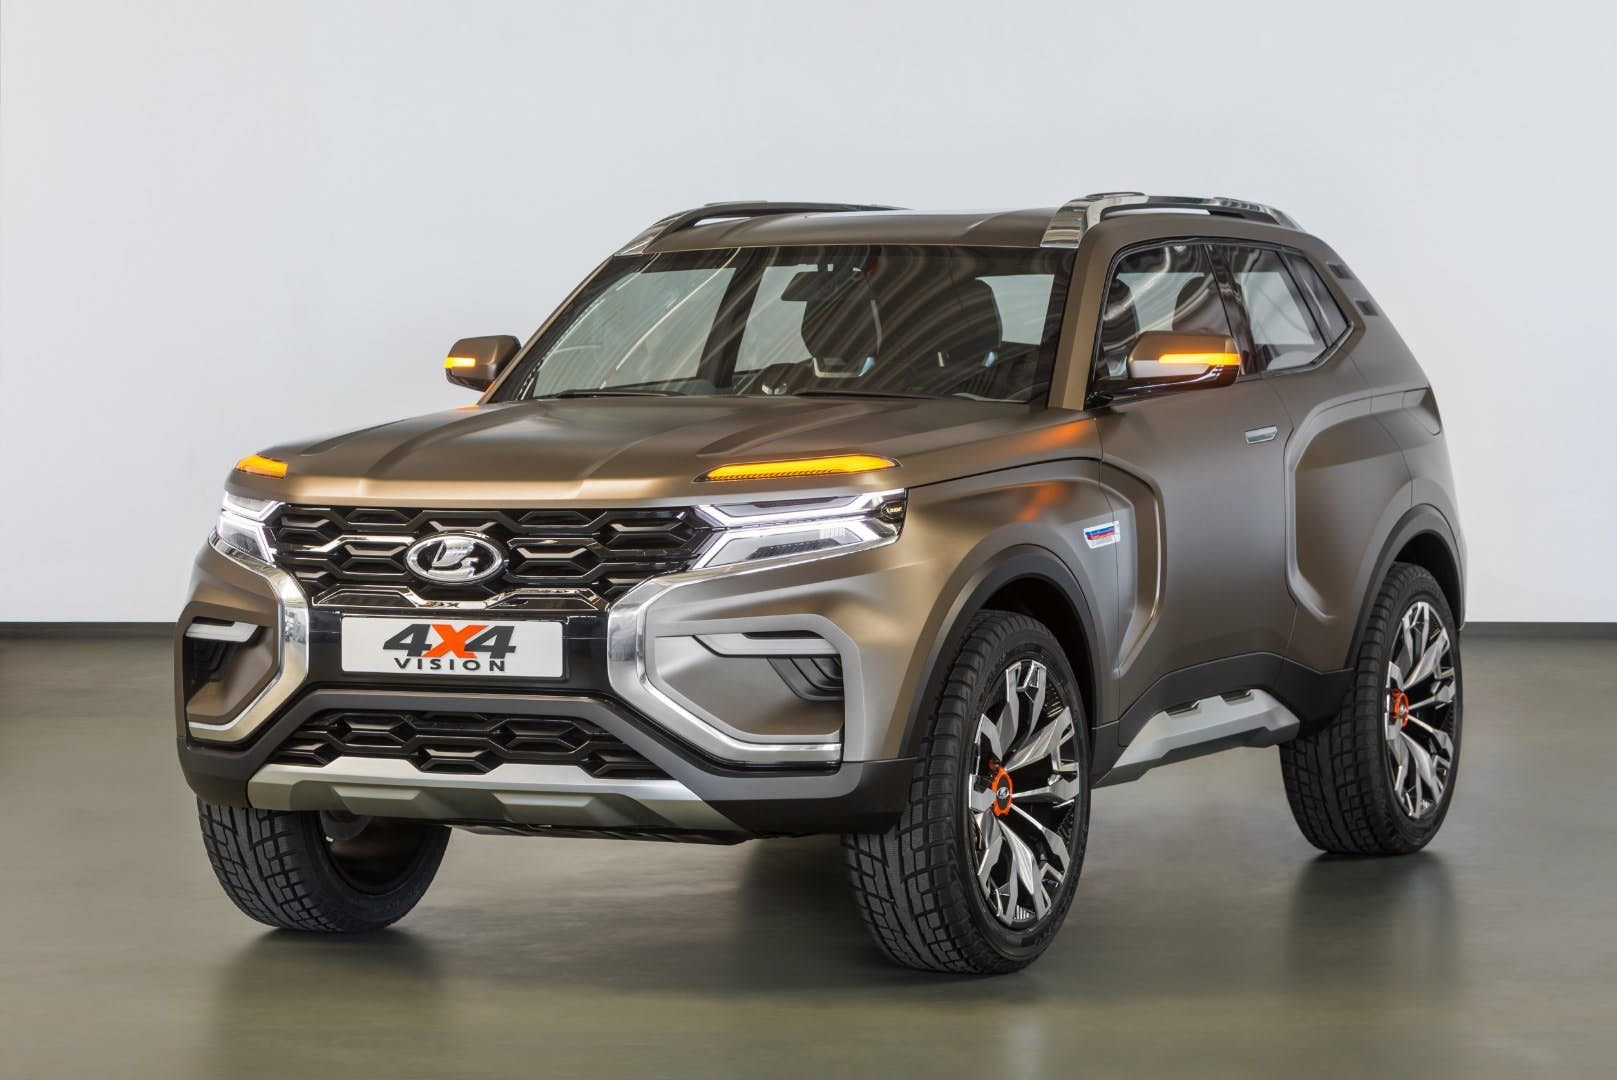 Lada Keeps It Rugged With 4x4 Vision Concept Suv 4x4 Upcoming Cars Niva